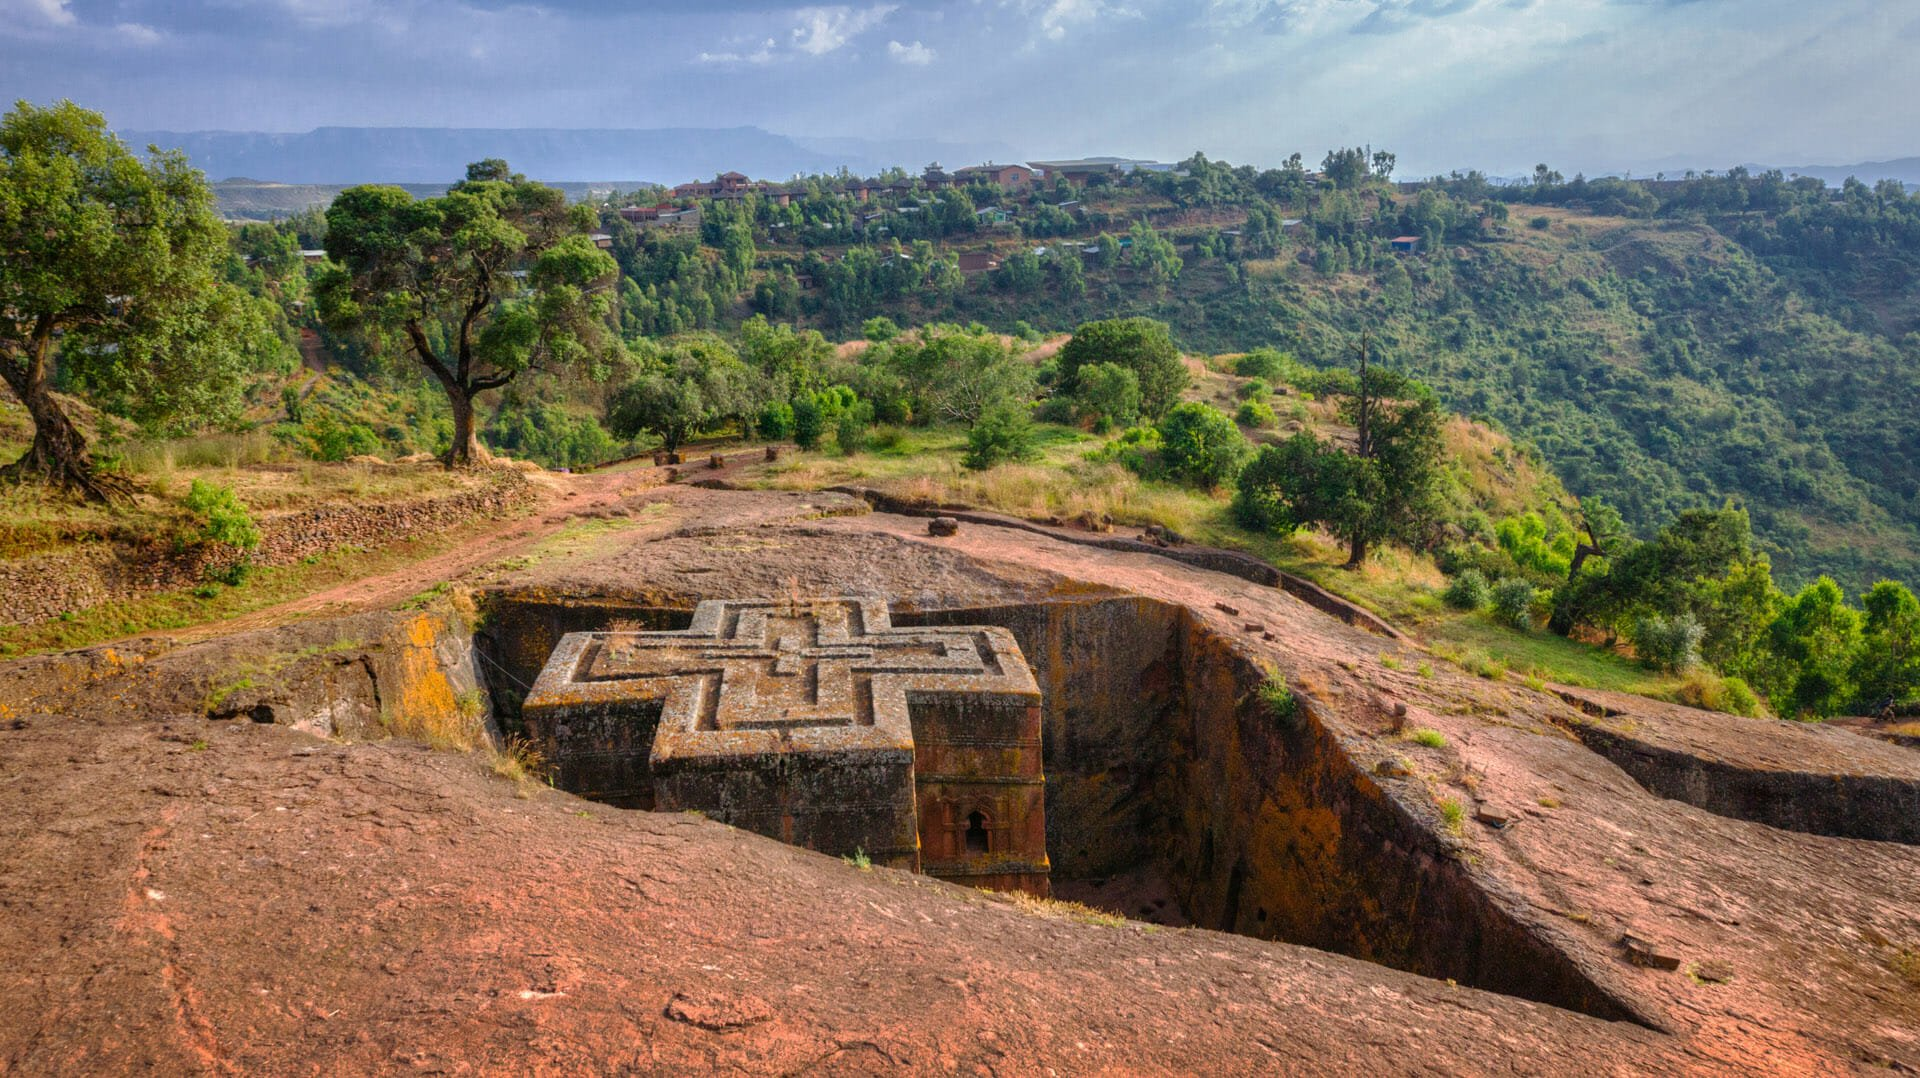 Reasons You Should Travel to Ethiopia